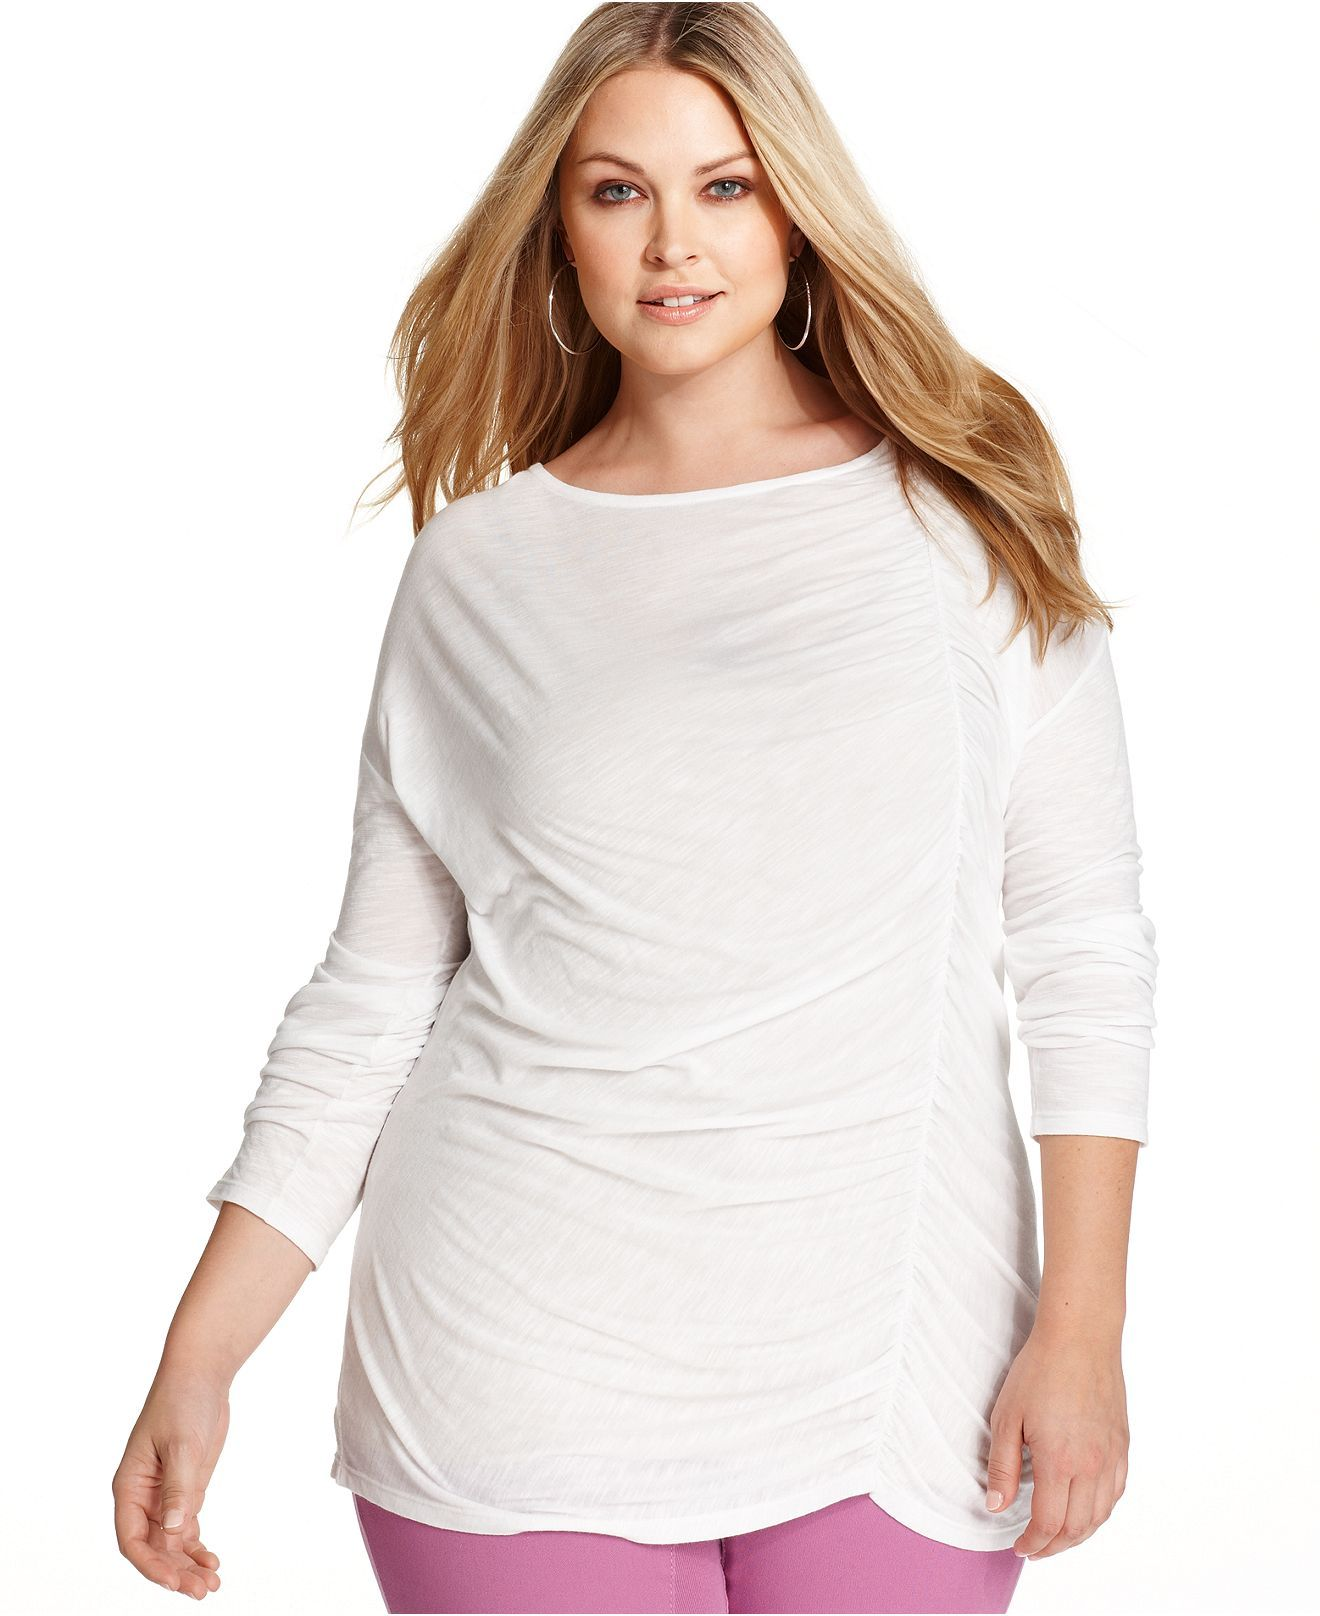 dkny jeans plus size top, long-sleeve ruched - plus size tops